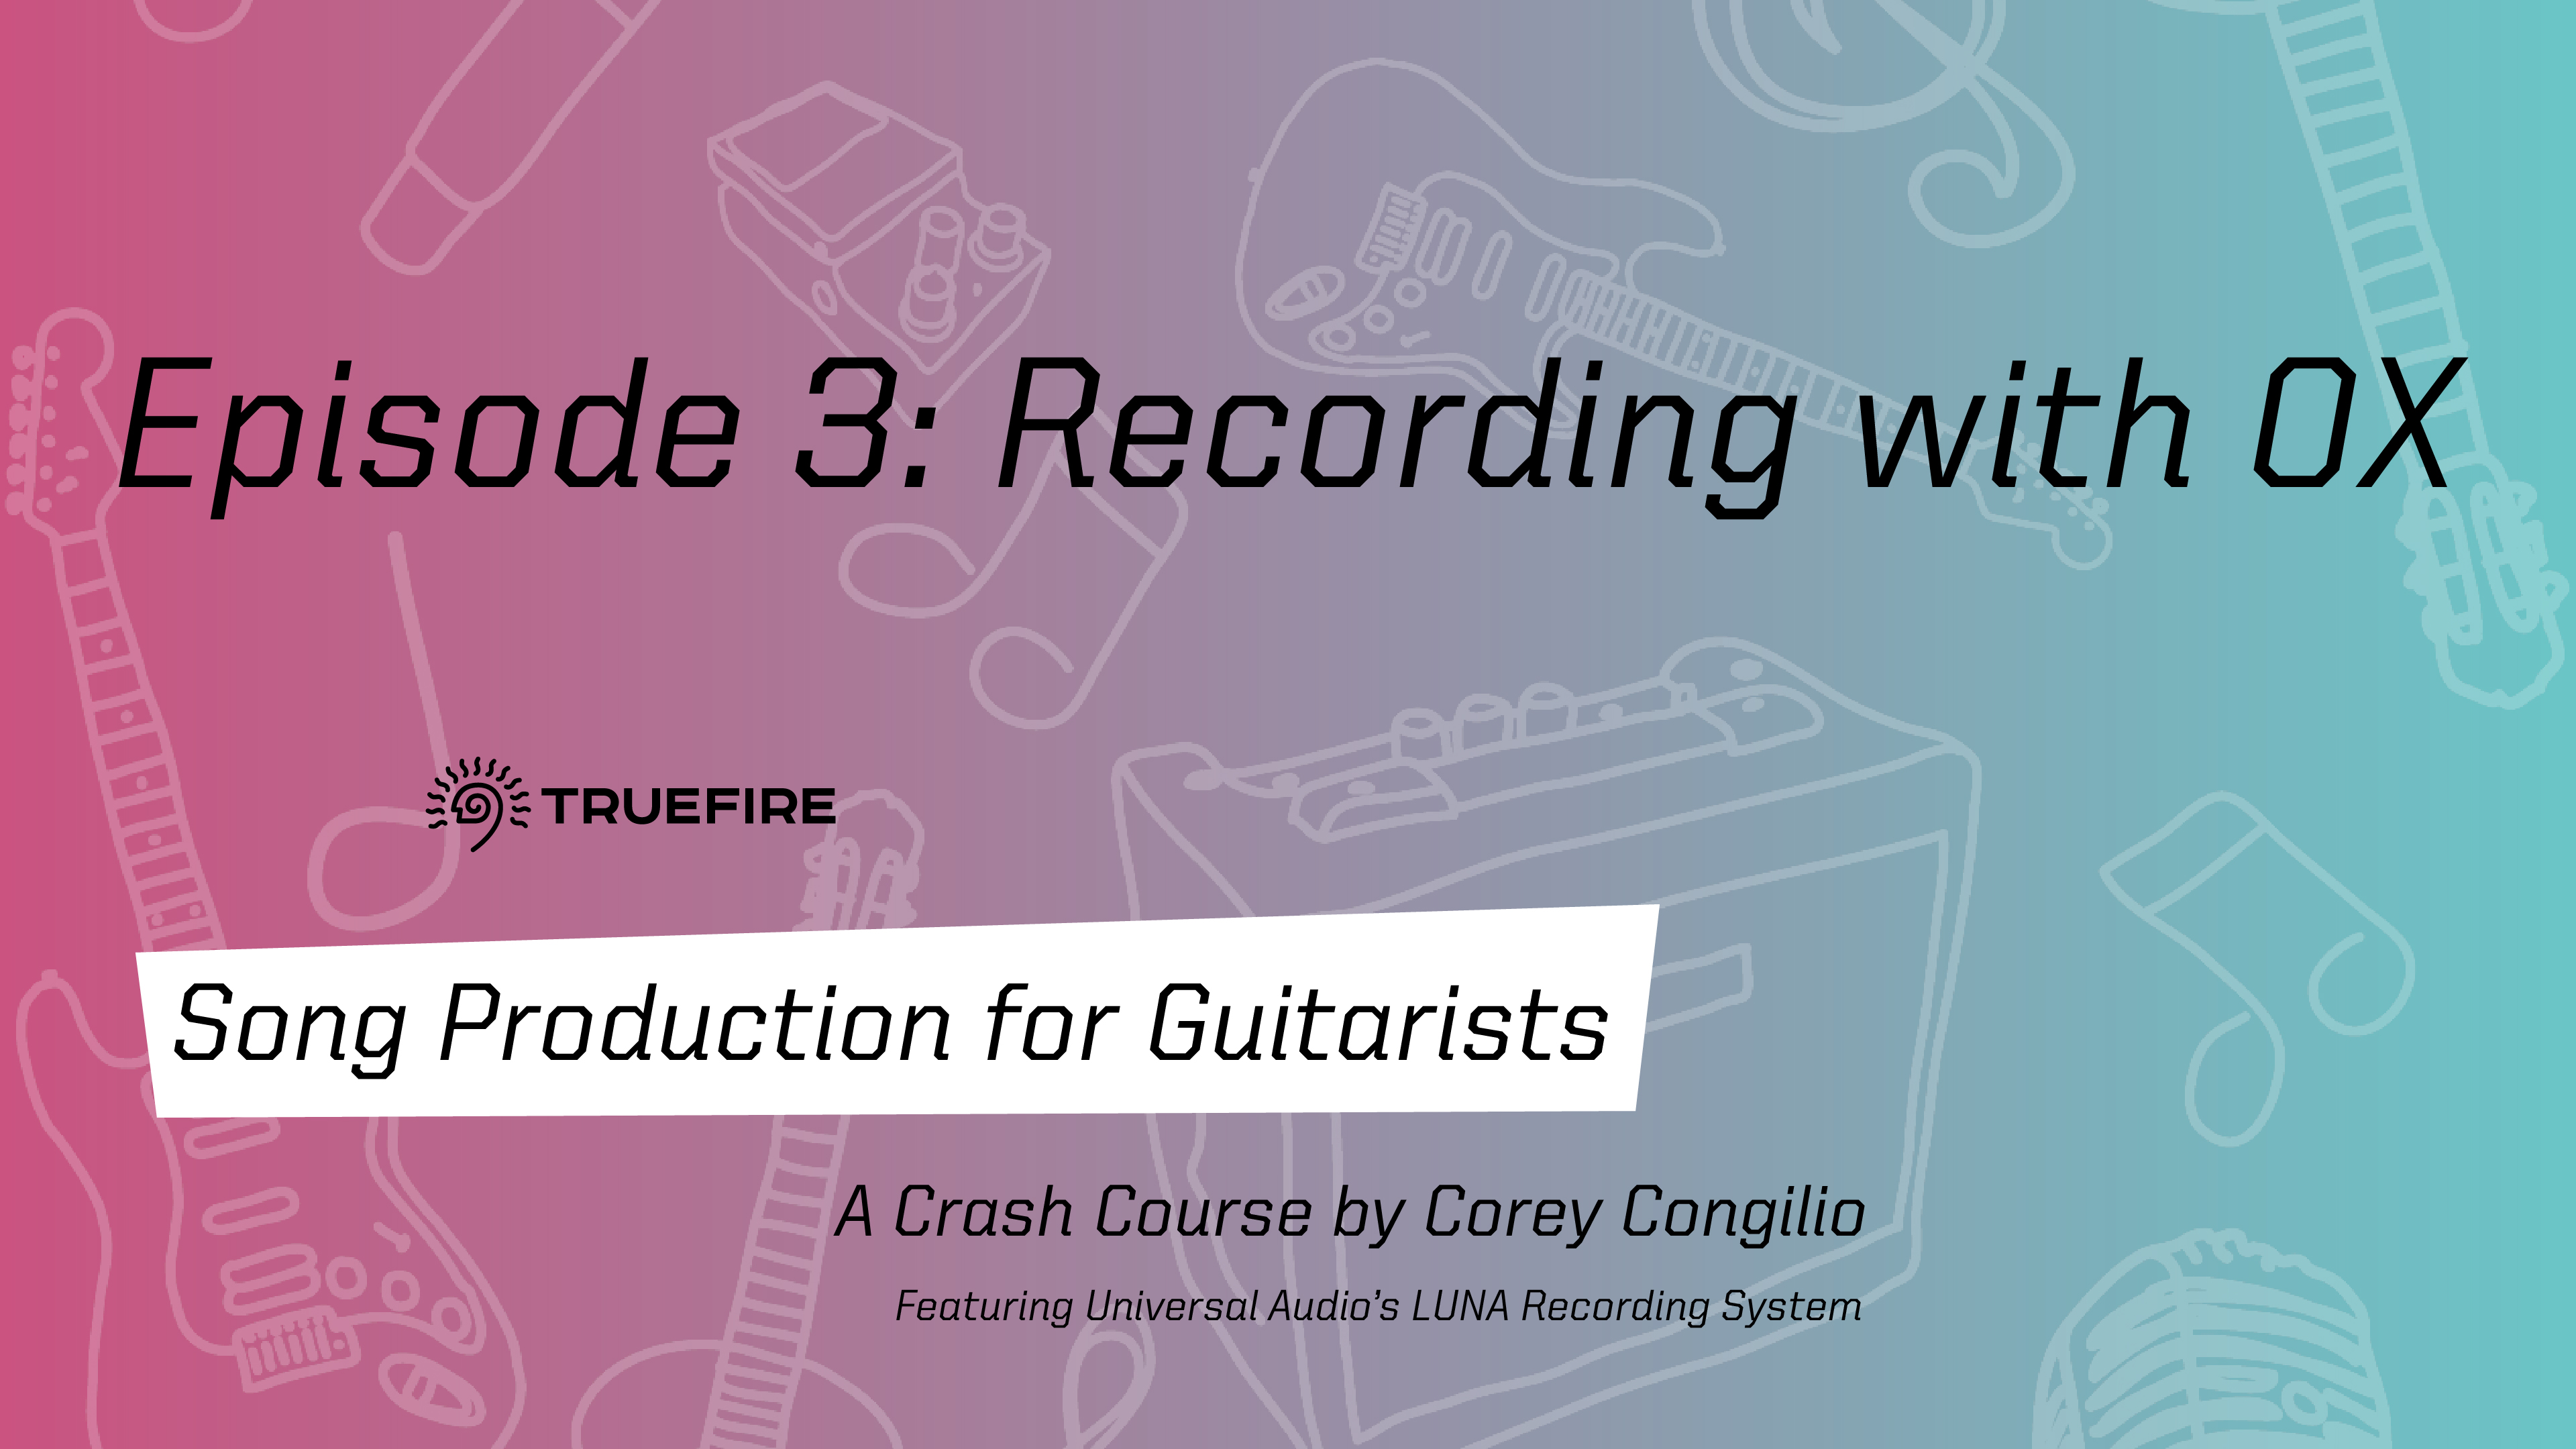 Song Production for Guitarists 3